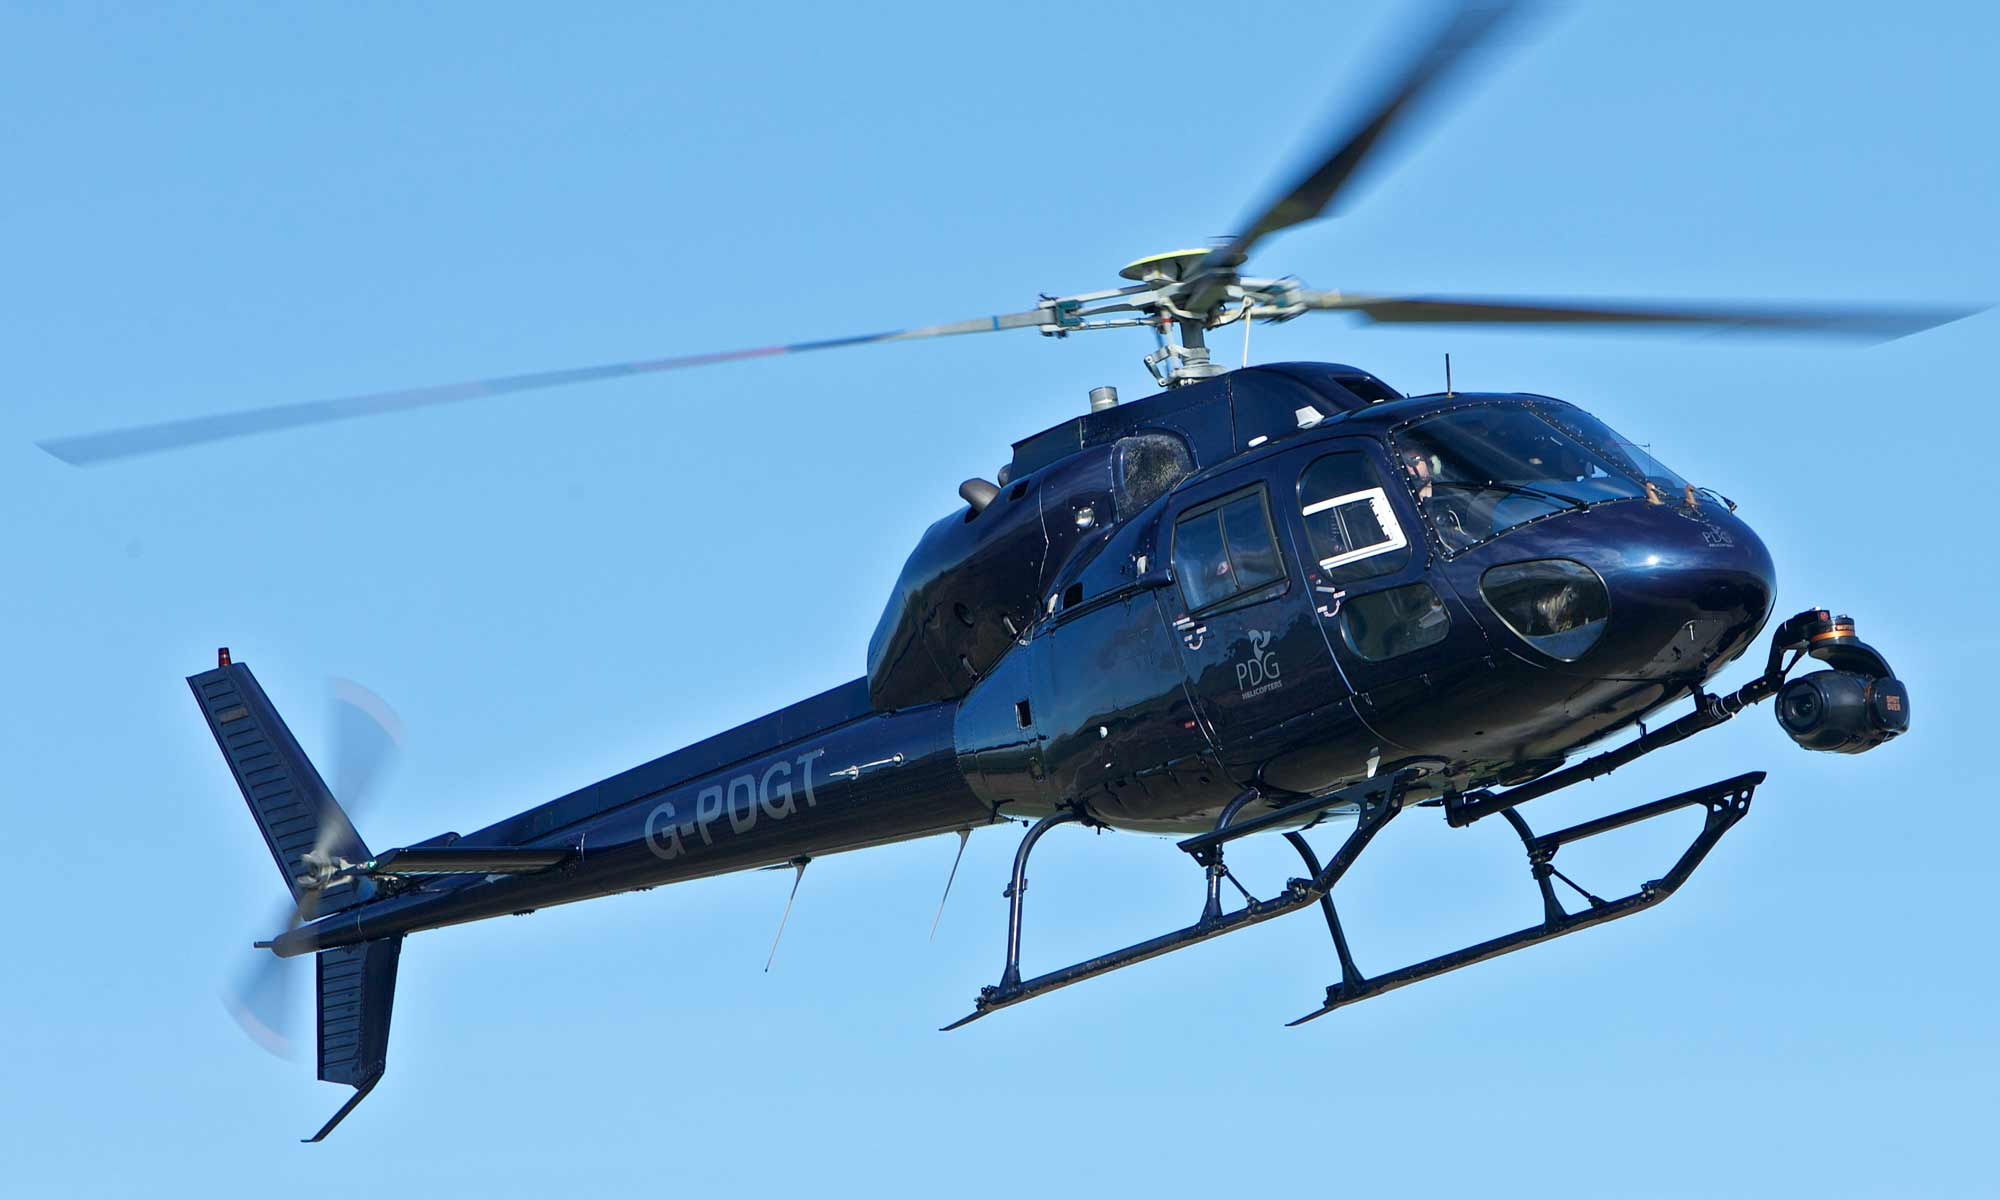 Slow motion aerial filming with Shotover F1 and Phantom Flex 4K mounted on PDG Film Services AS355 F2 helicopter